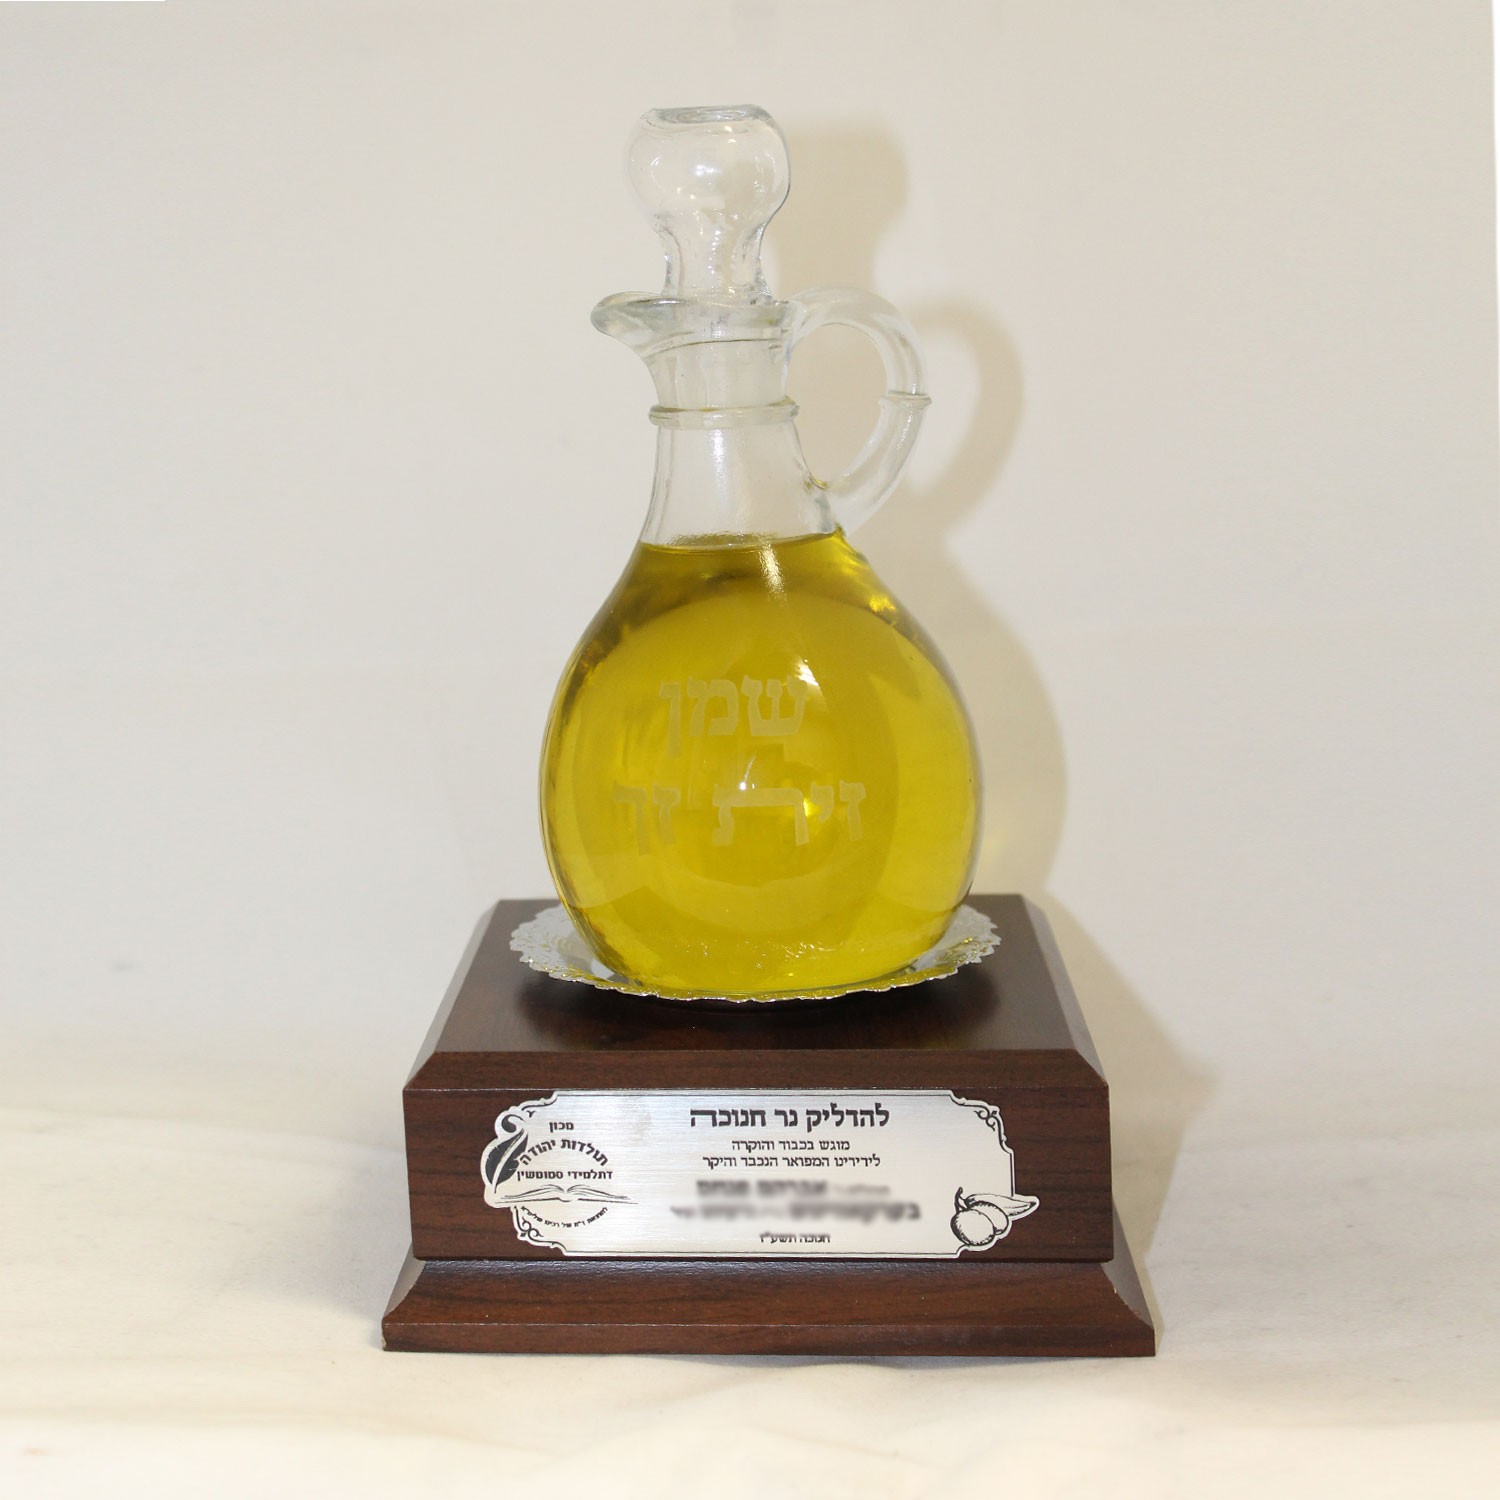 Sterlion-Creations-Chanukah-Oil-Gift